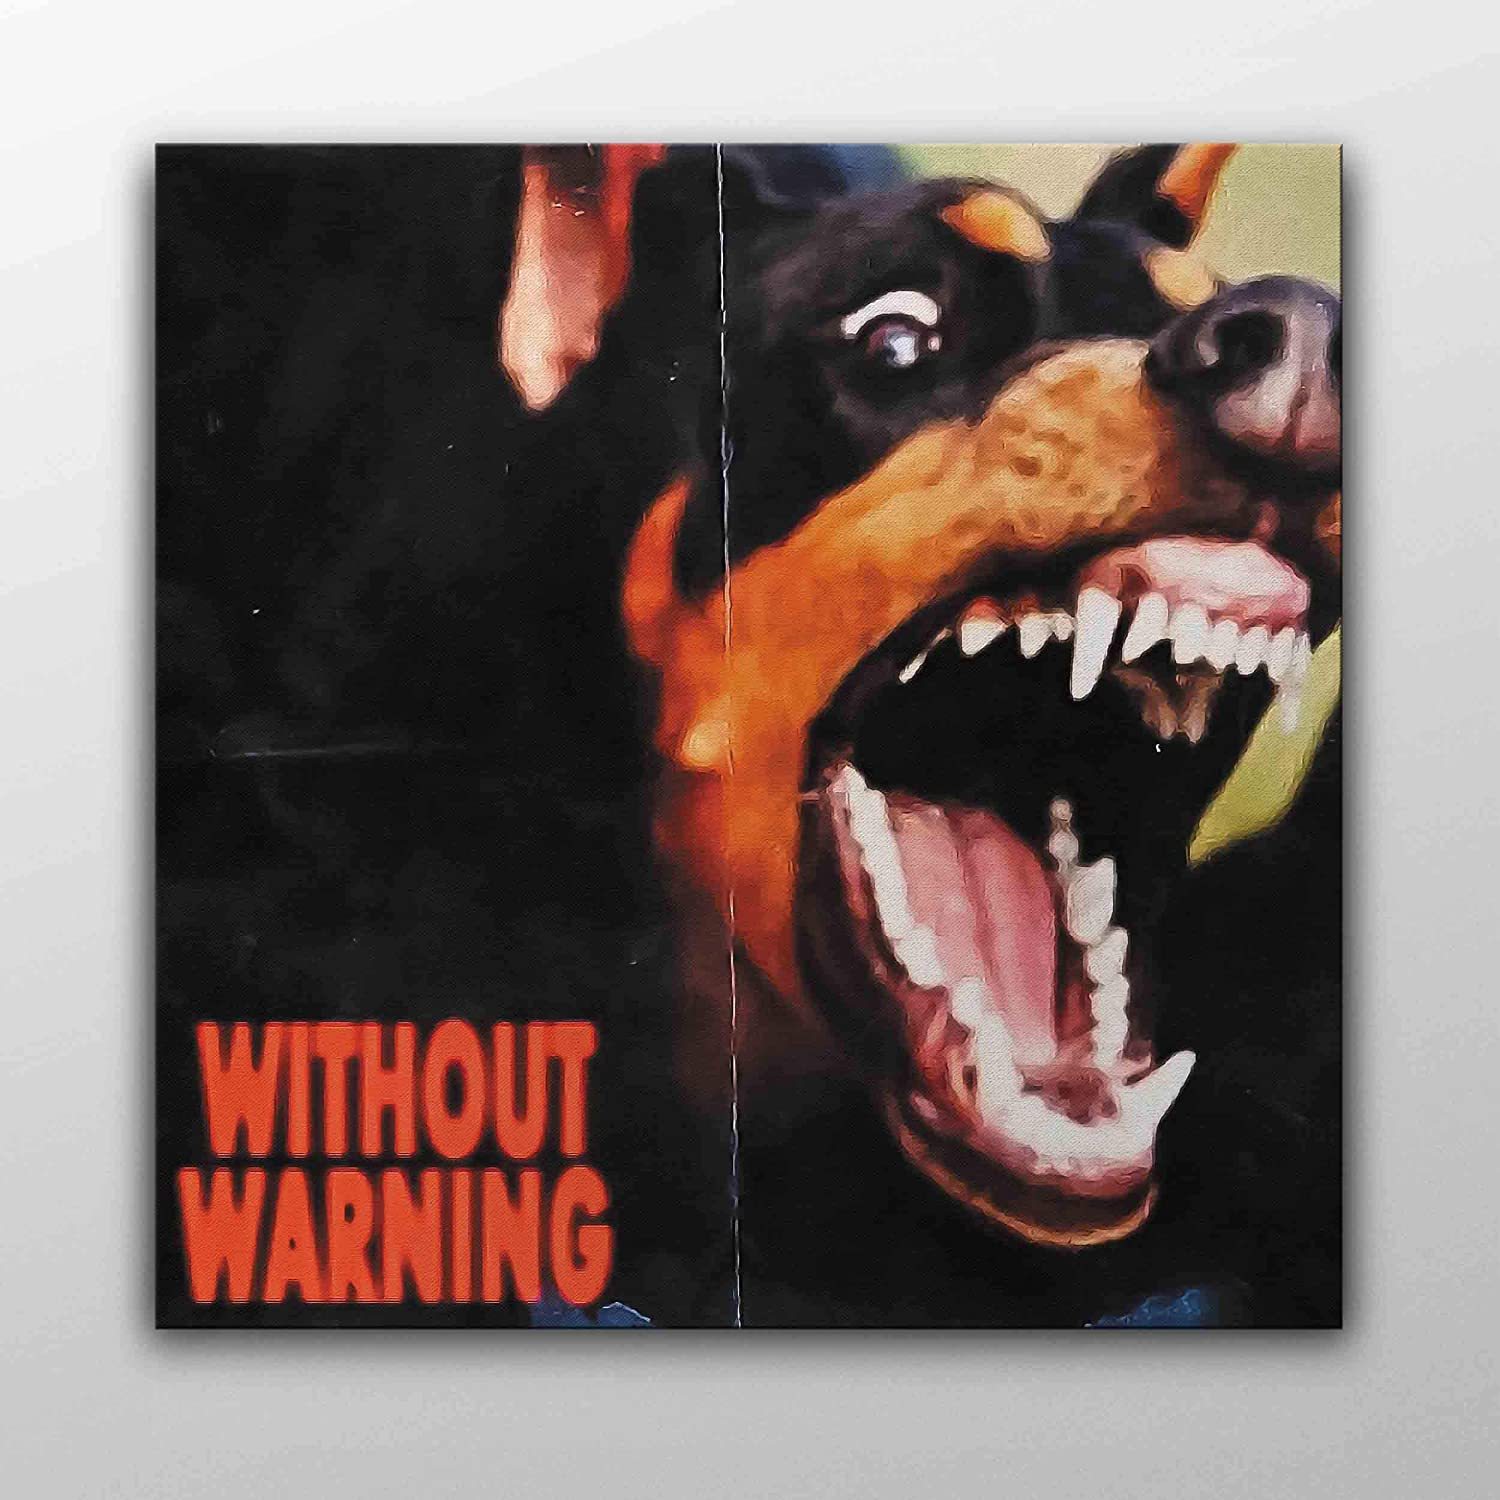 amazon com without warning 21 savage offset and metro boomin album cover canvas poster wall art printed home decor modern print gift idea 30cm x 30cm posters prints amazon com